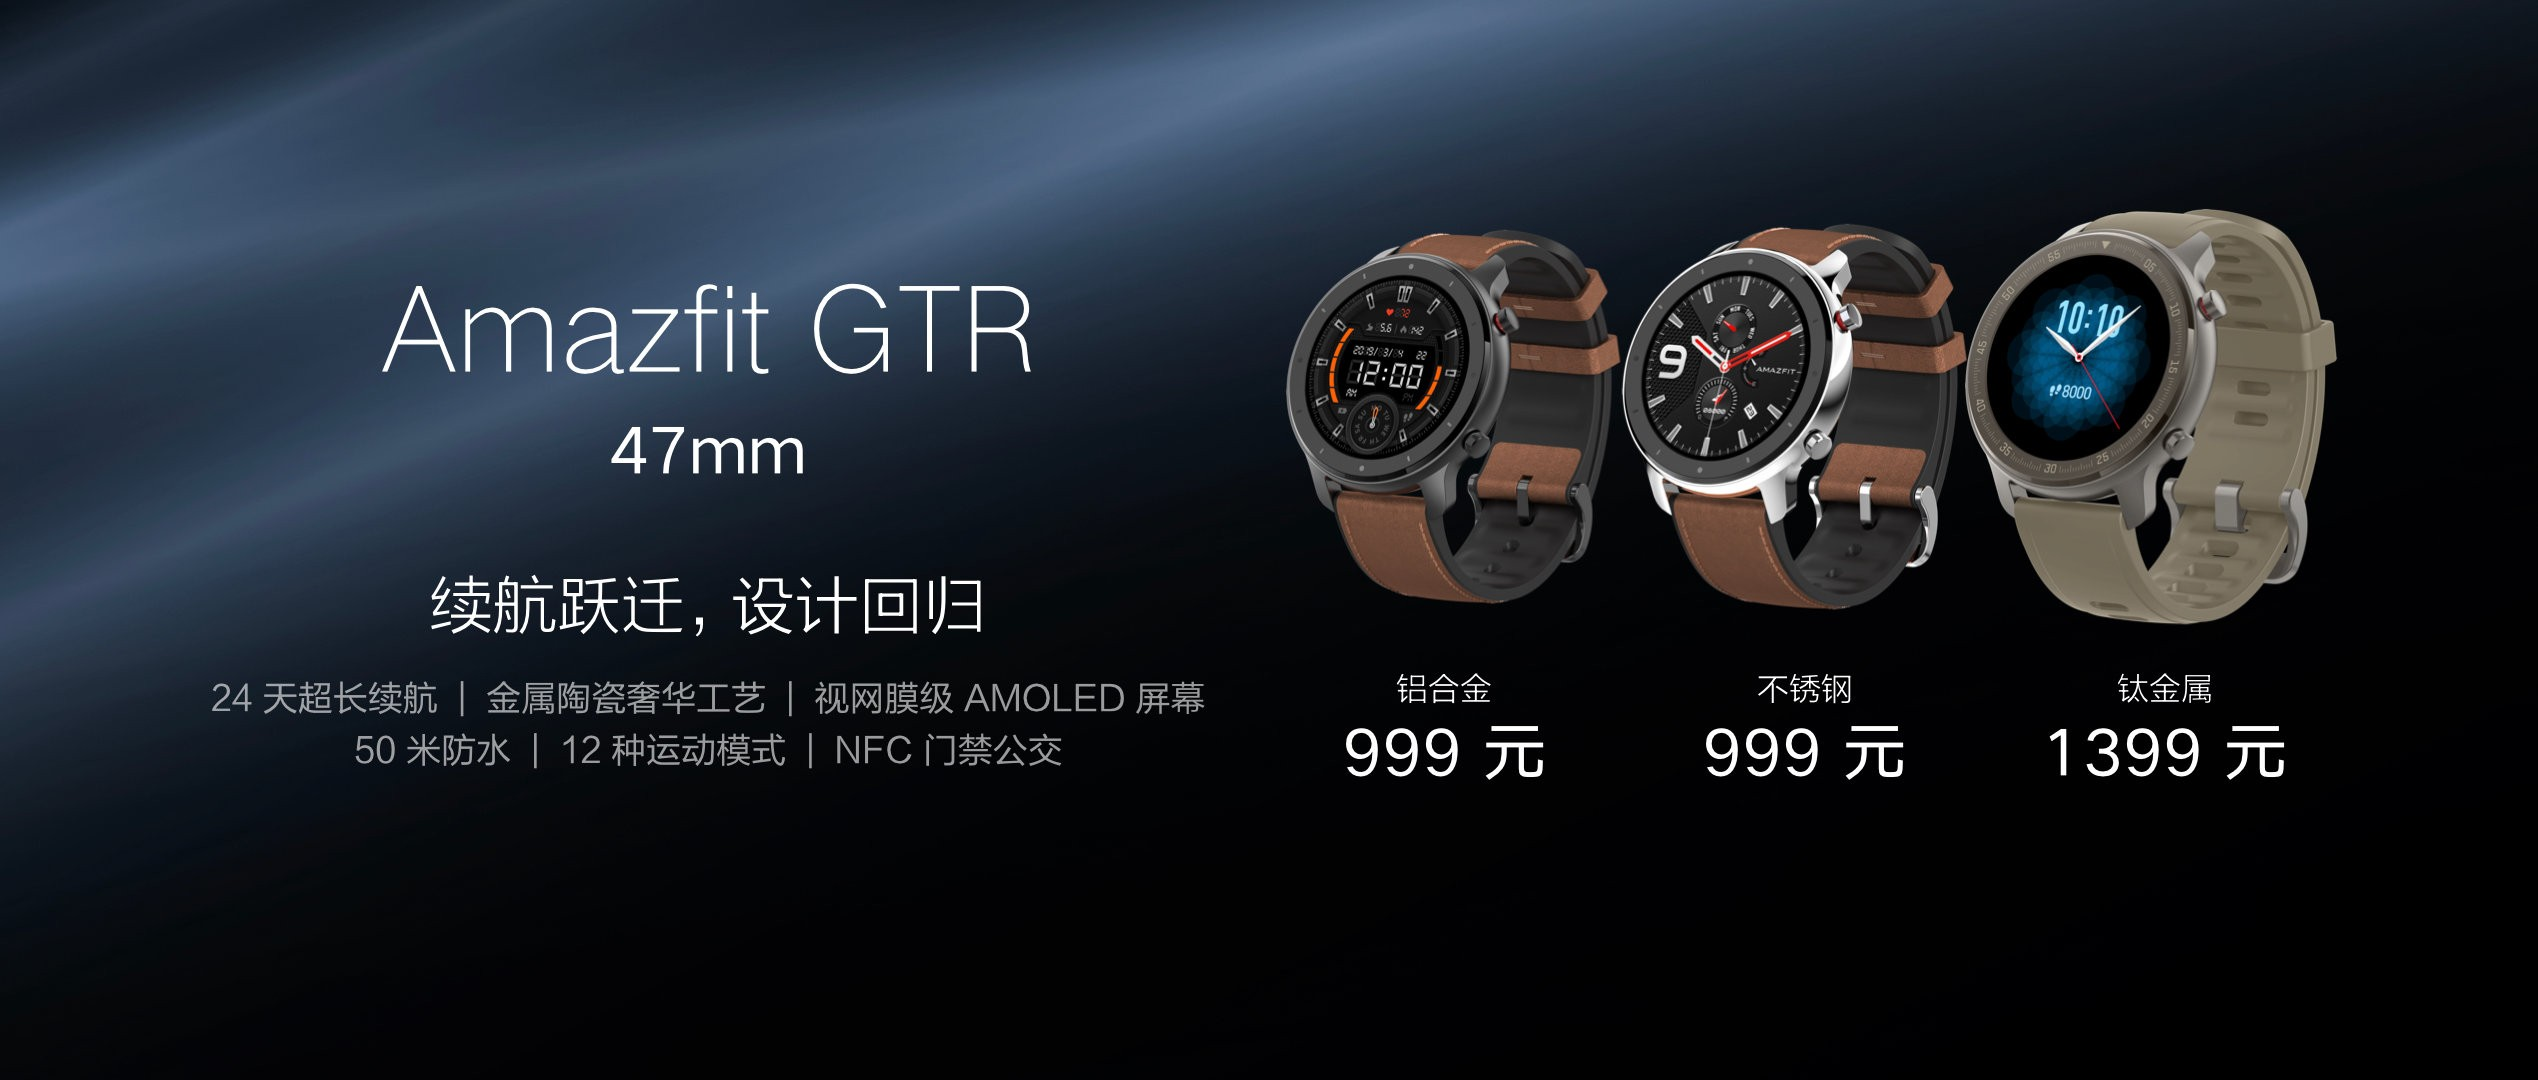 Huami Amazfit GTR 47mm Price